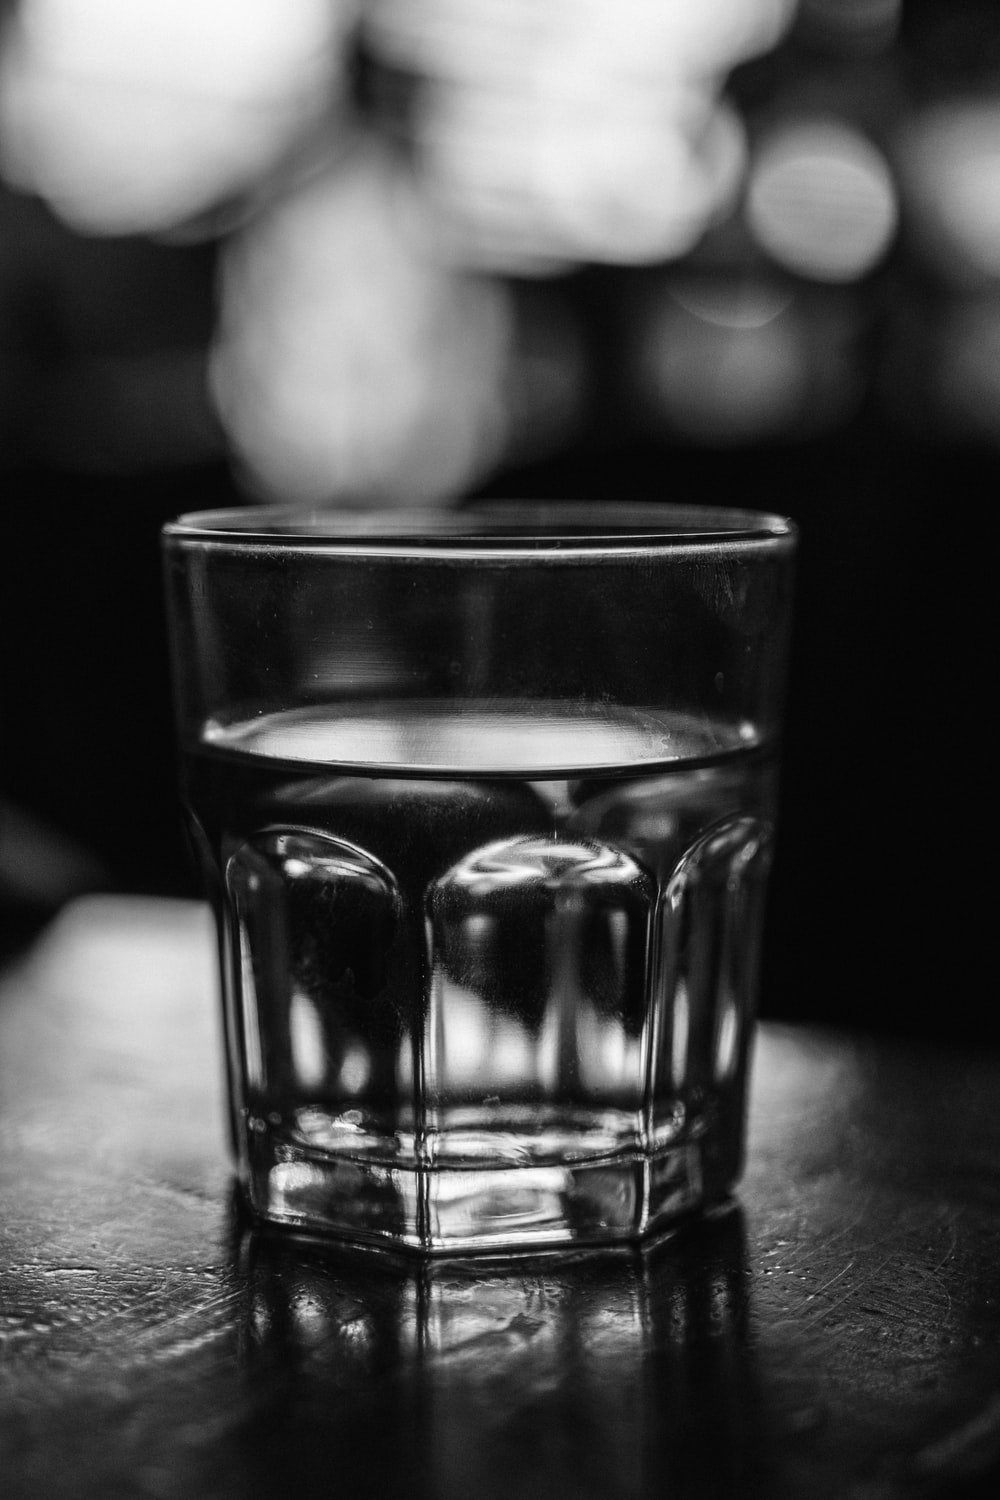 grayscale photo of a drinking glass with water